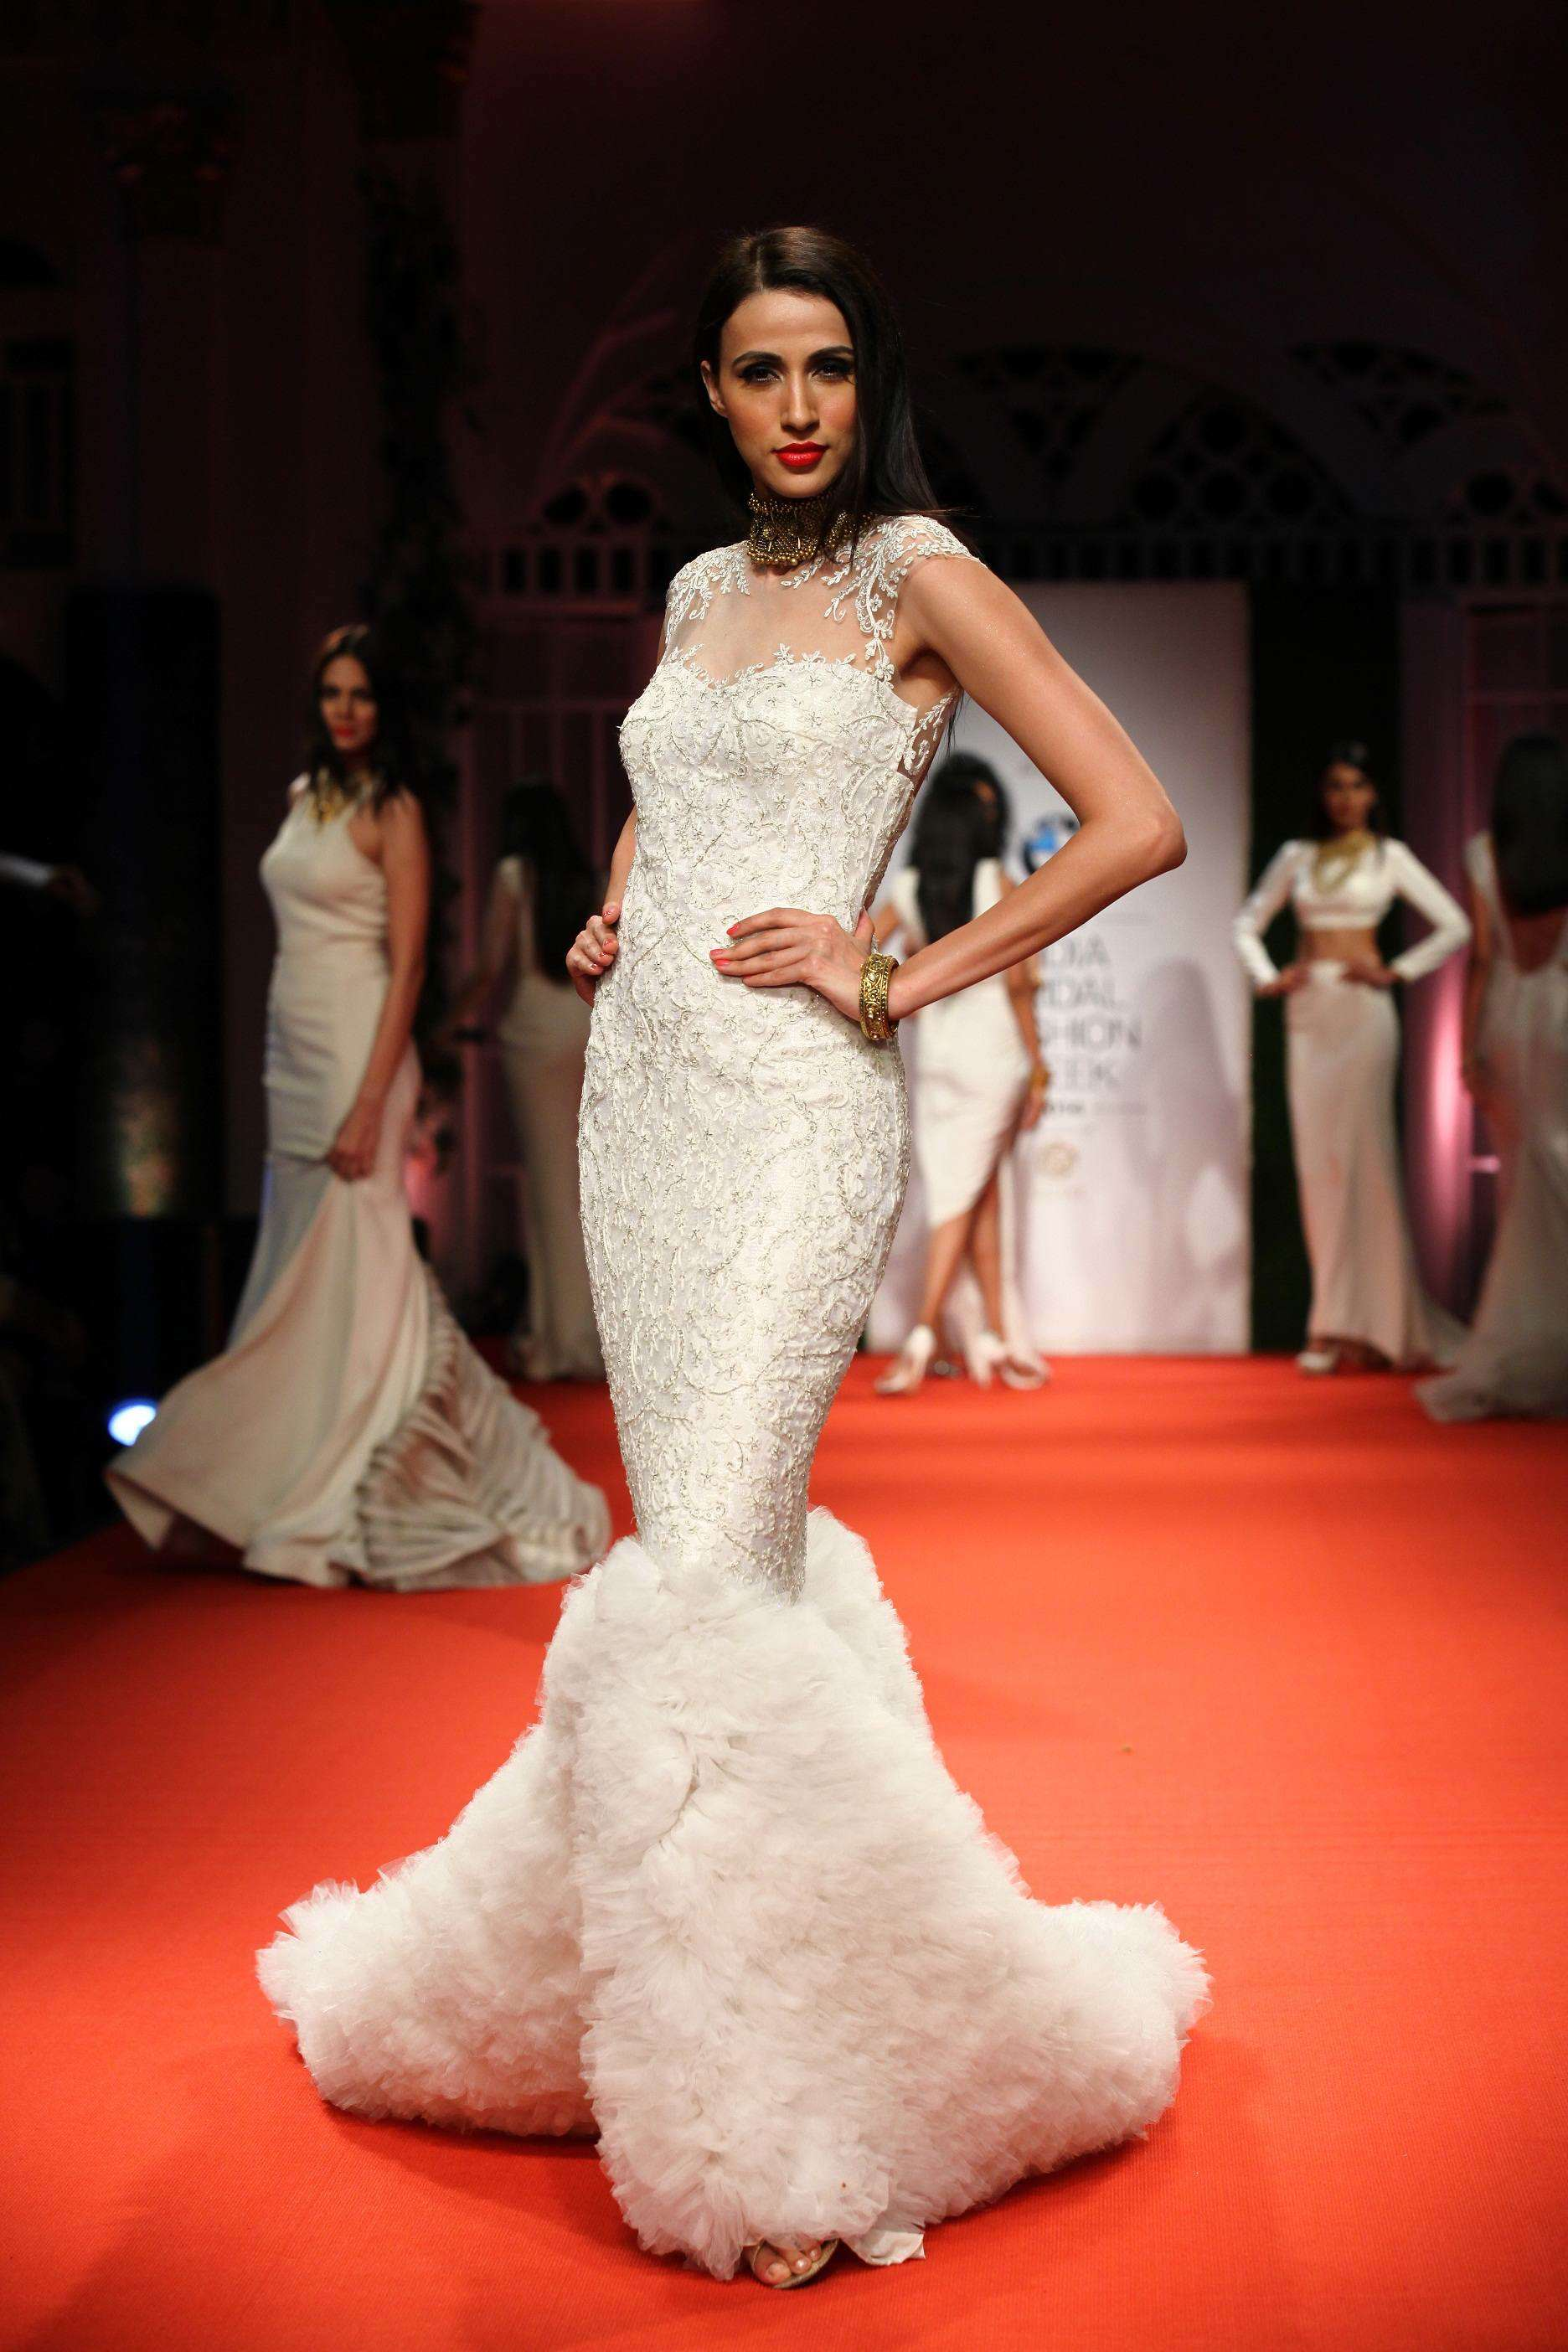 Azva Presents Gold Jewellery in its Most Elegant and Glamourous Avatar at BMW India Bridal Fashion Week 2014 in association with AZVA at DLF Emporio (1).jpg